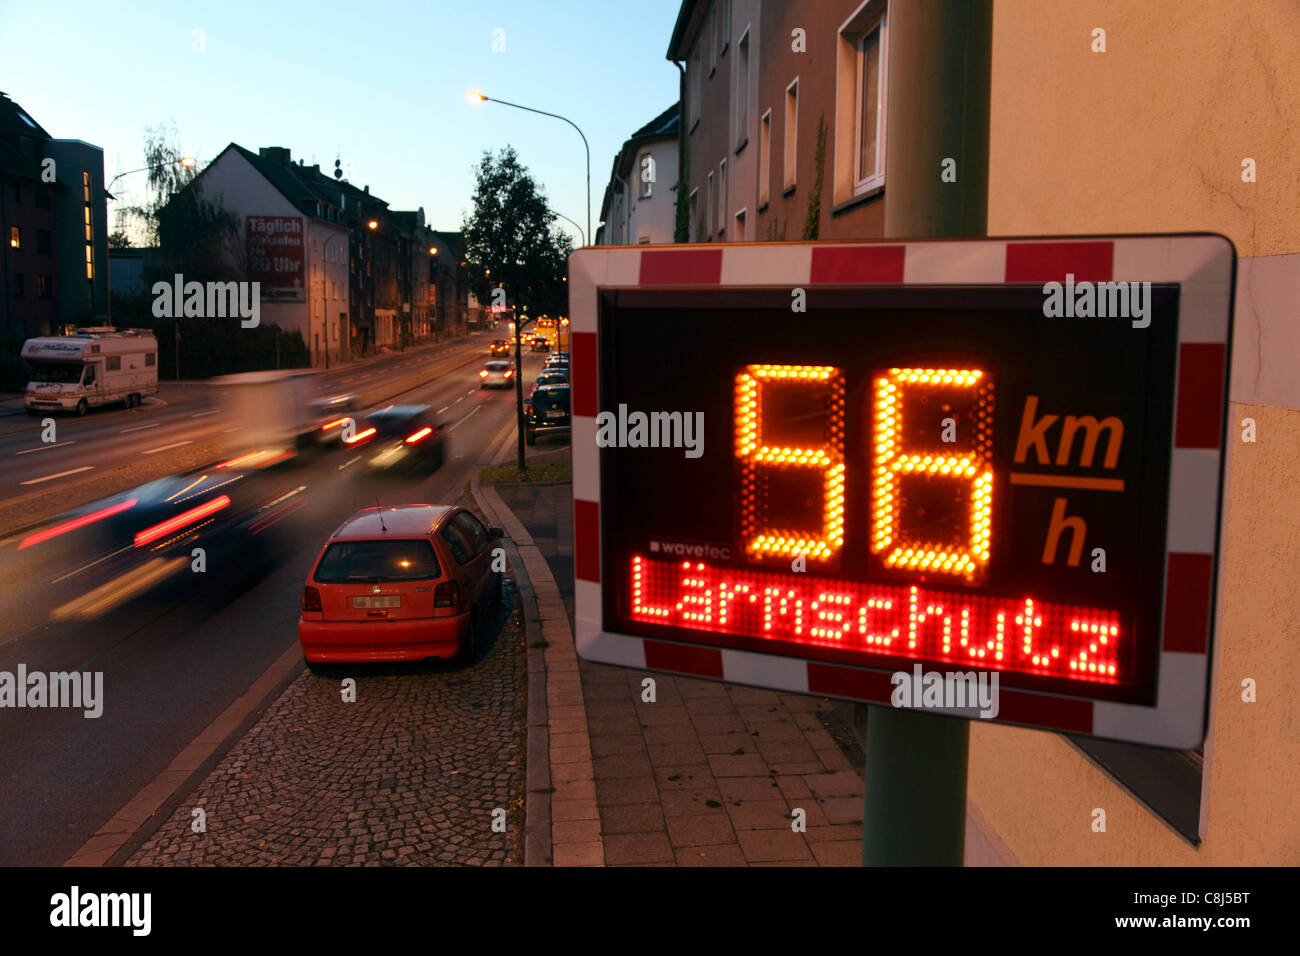 speed limit in km stock photos speed limit in km stock images alamy. Black Bedroom Furniture Sets. Home Design Ideas